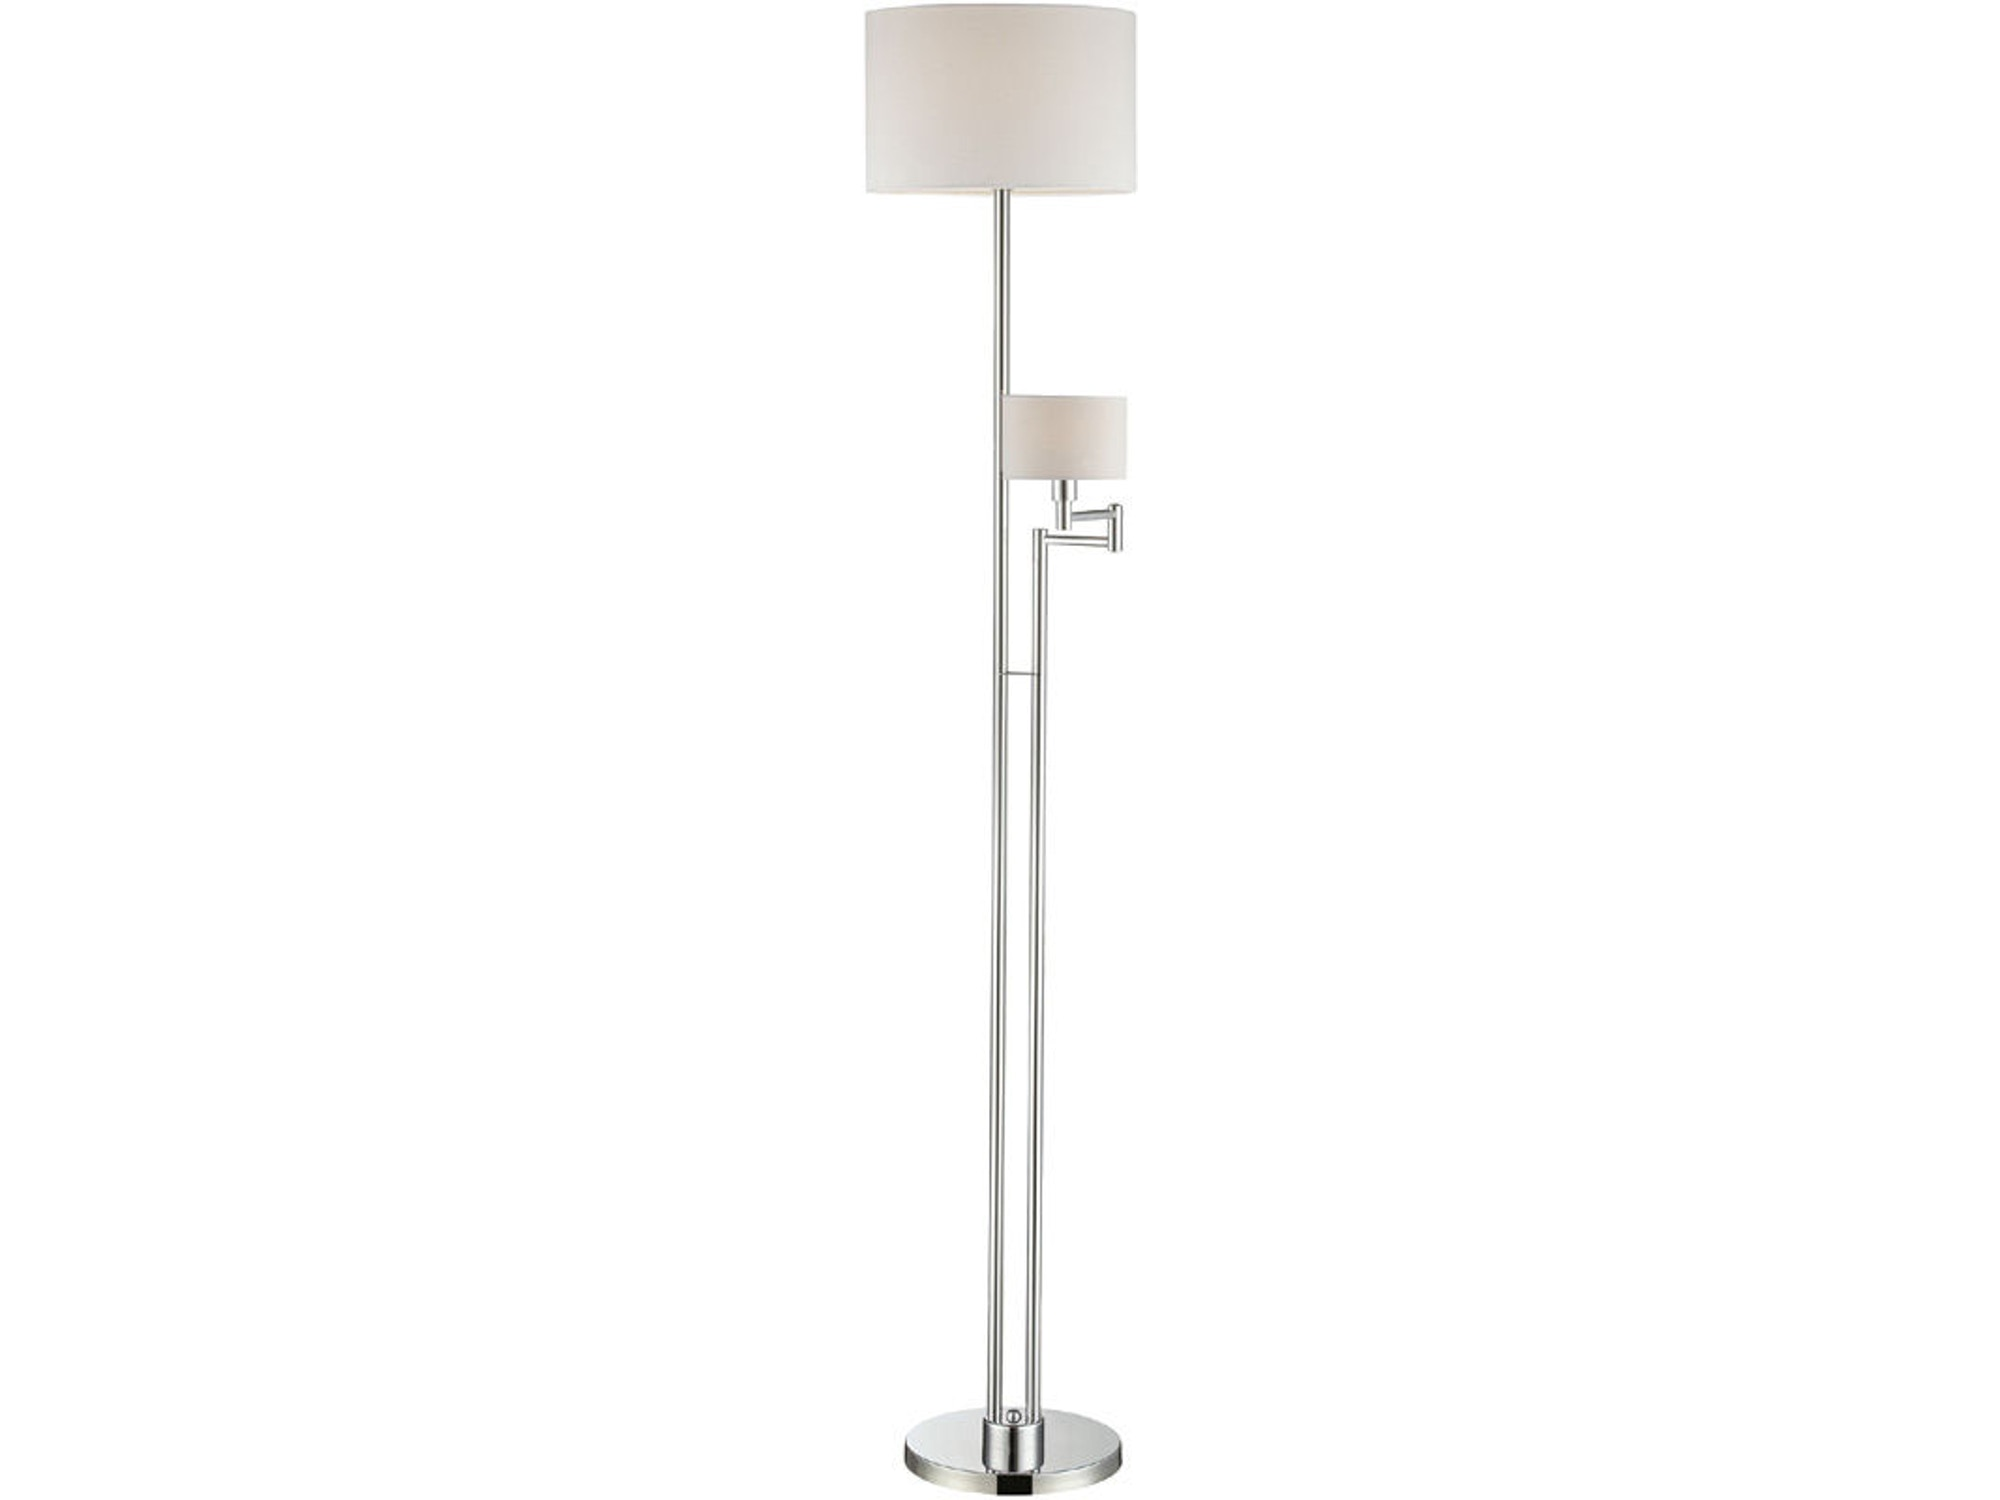 Floor Lamp with Swing Arm Reading Lamp 031176